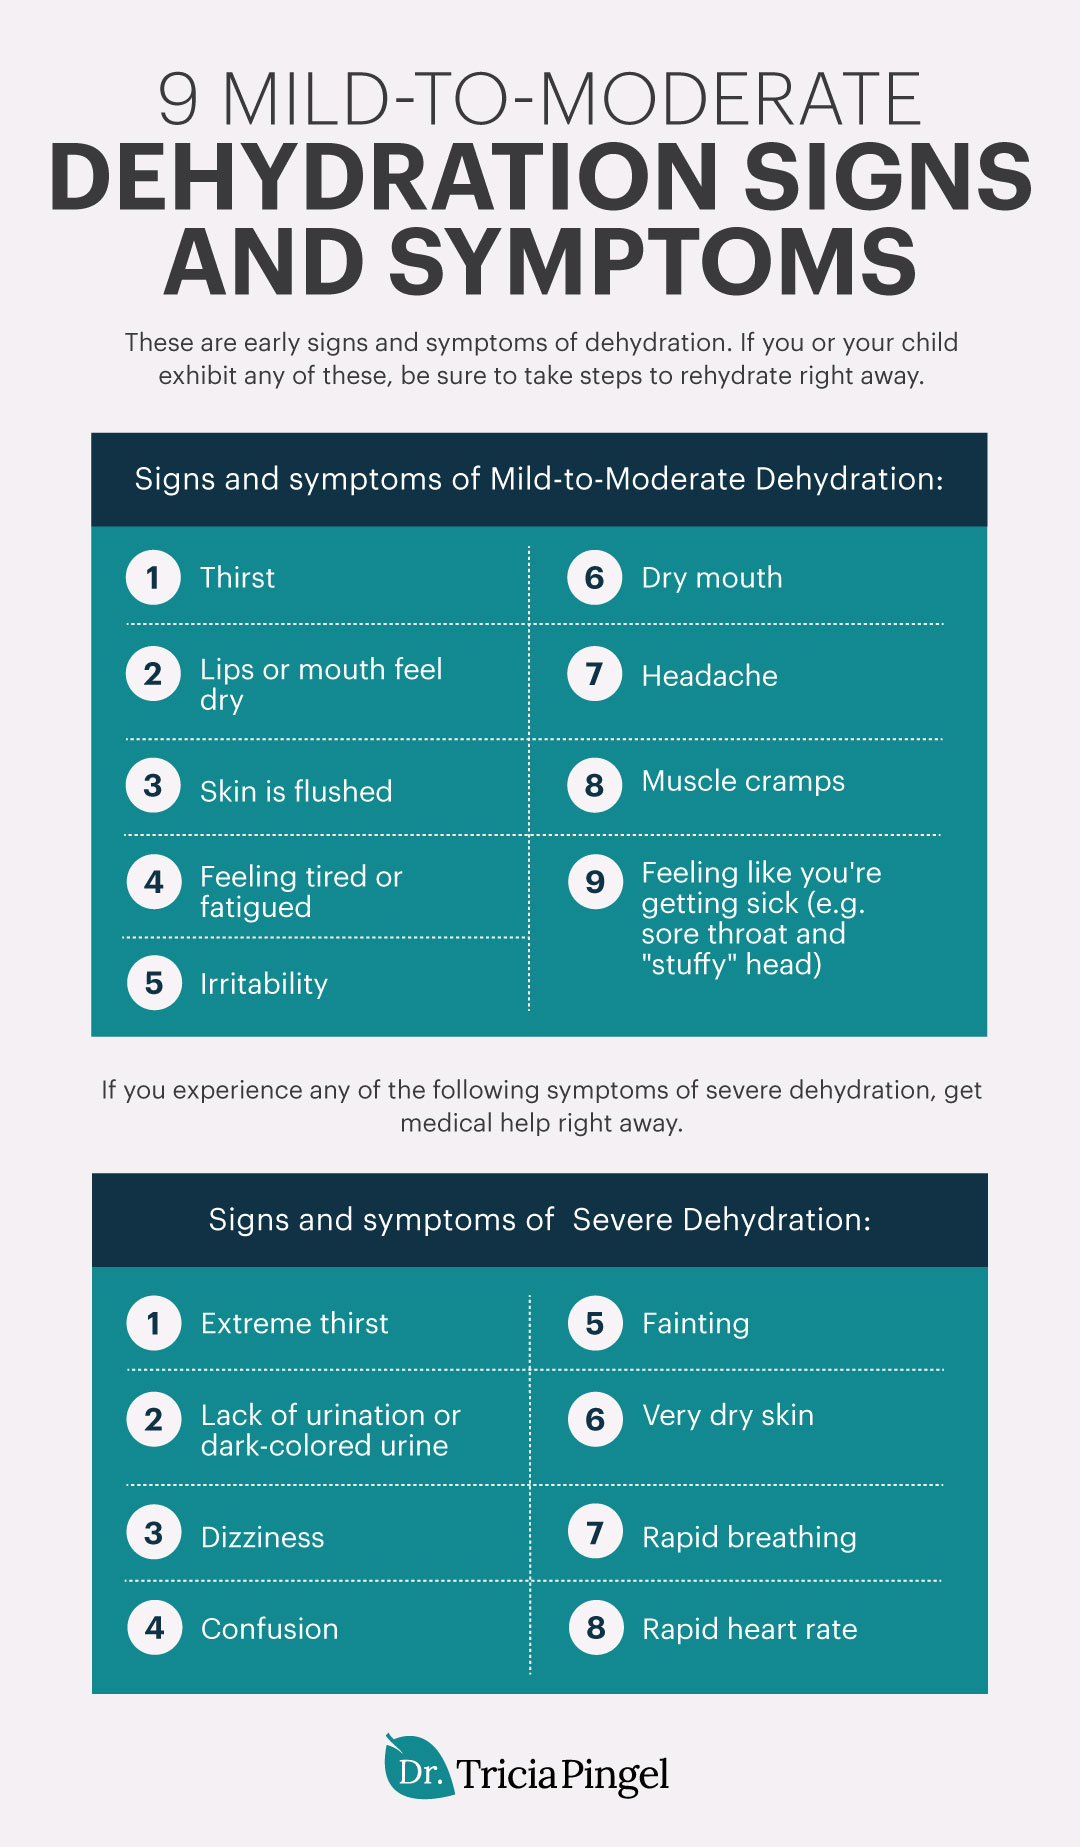 Dehydration signs and symptoms - Dr. Pingel